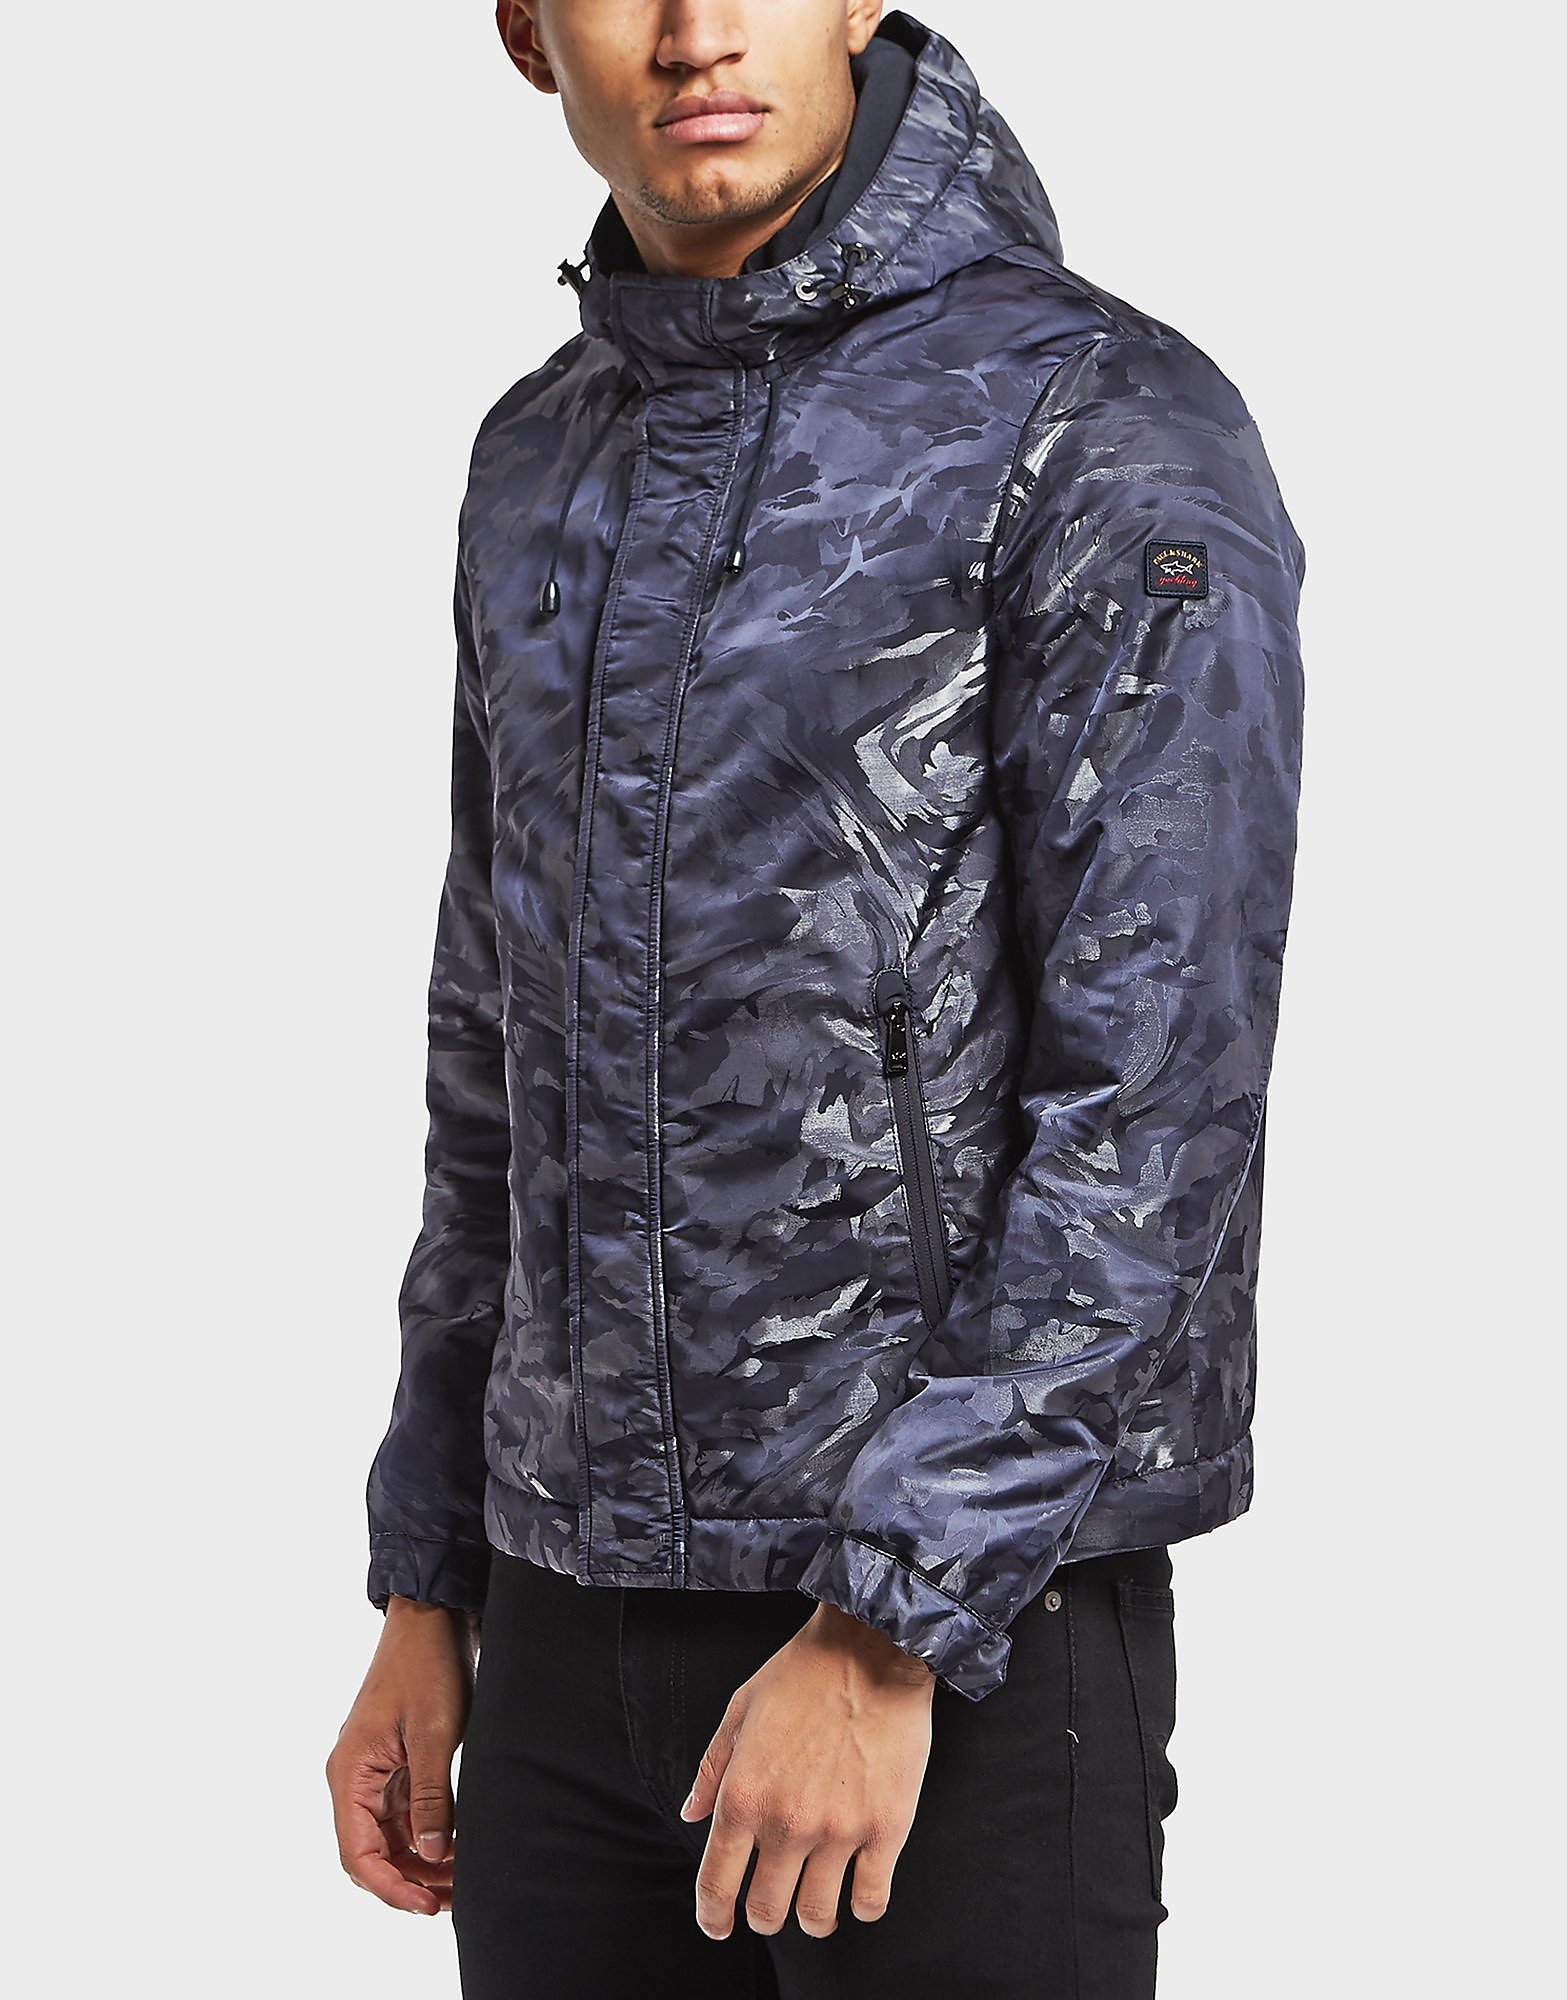 Paul and Shark Camoflauge Shark Padded Jacket